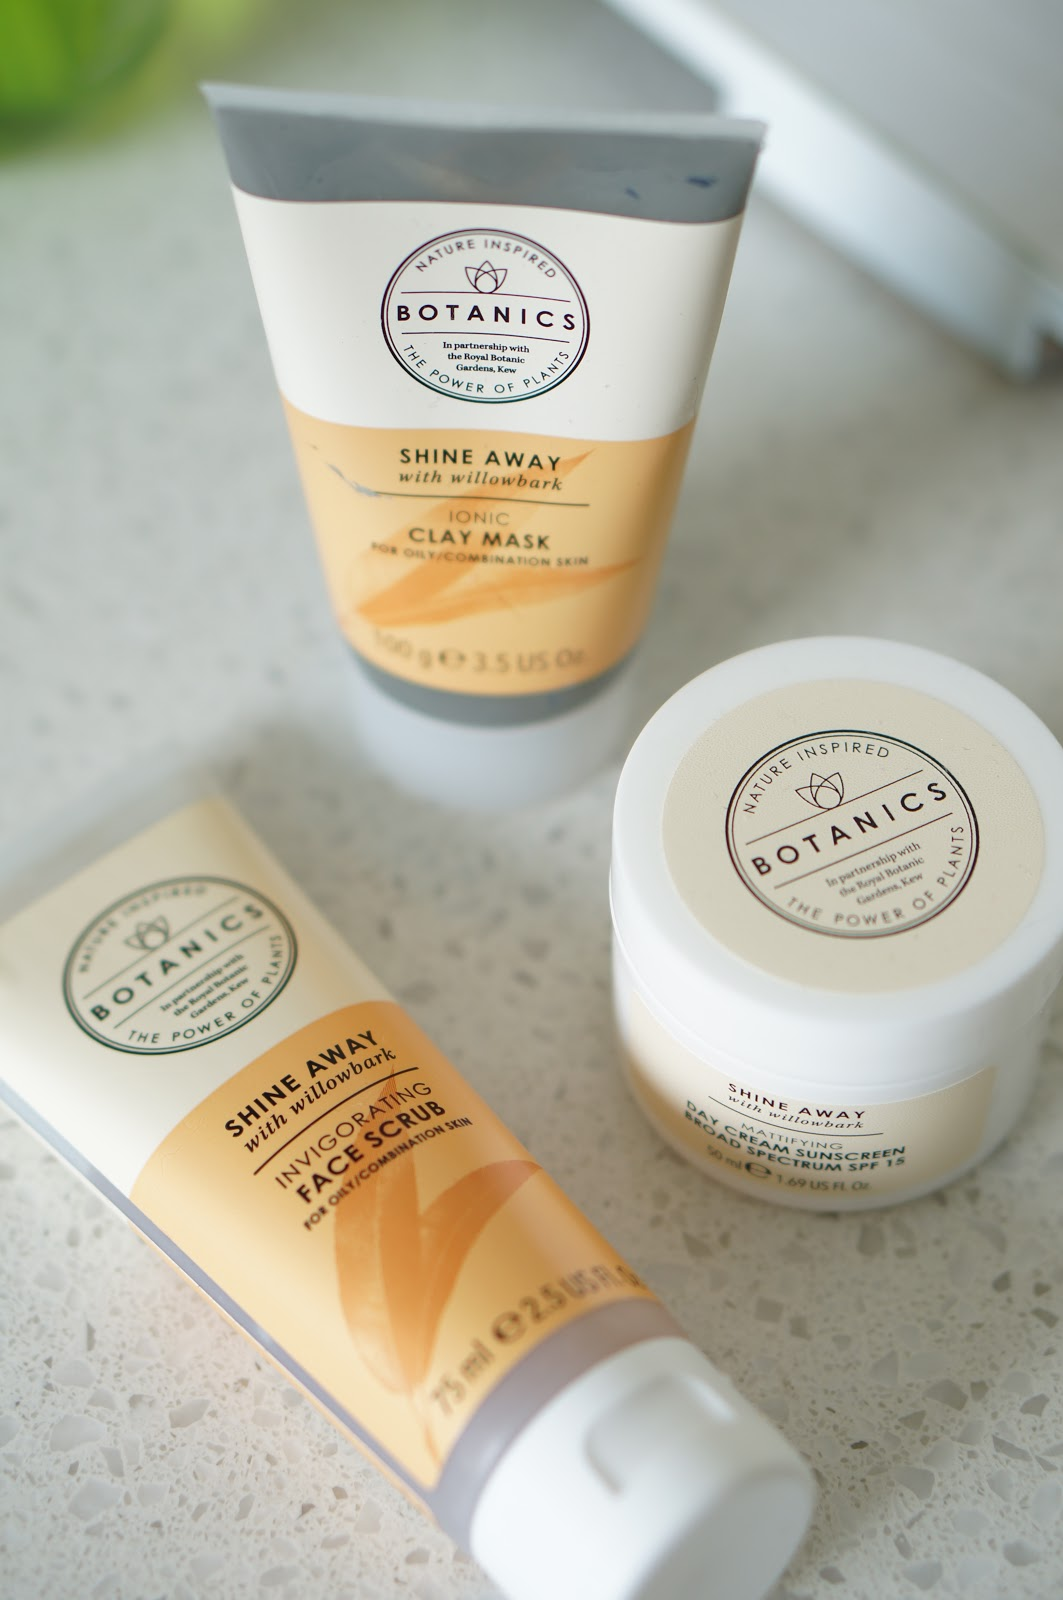 Rebecca Lately Botanics Shine Away Review Ionic Clay Mask Invigorating Face Scrub Mattifying Day Cream Sunscreen